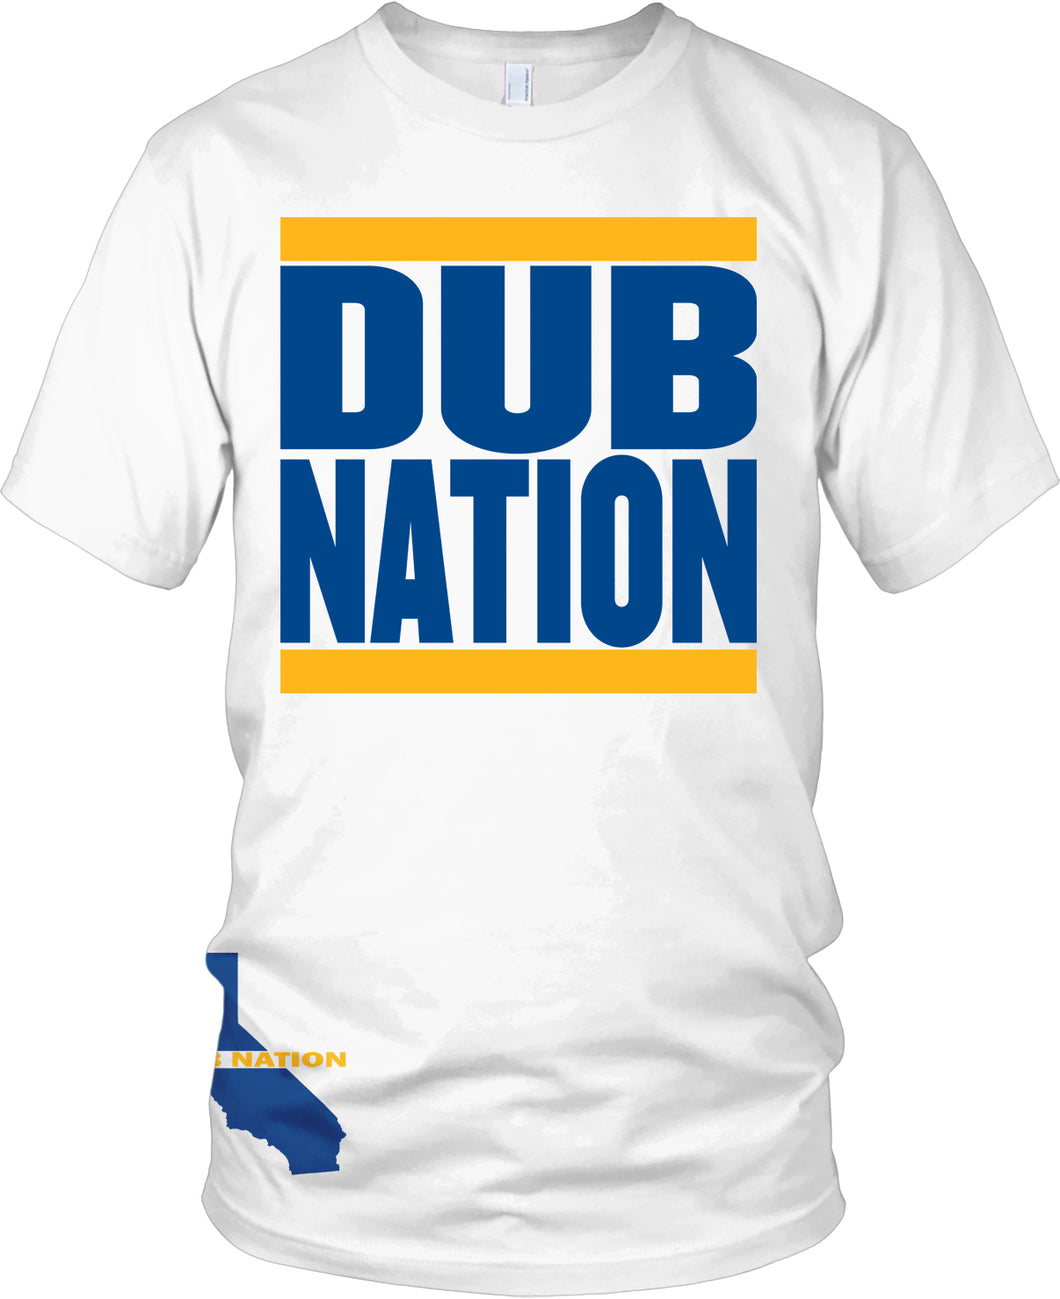 DUB NATION WHITE T-SHIRT (LIMITED EDITION) GOLDEN STATE WARRIORS EDITION